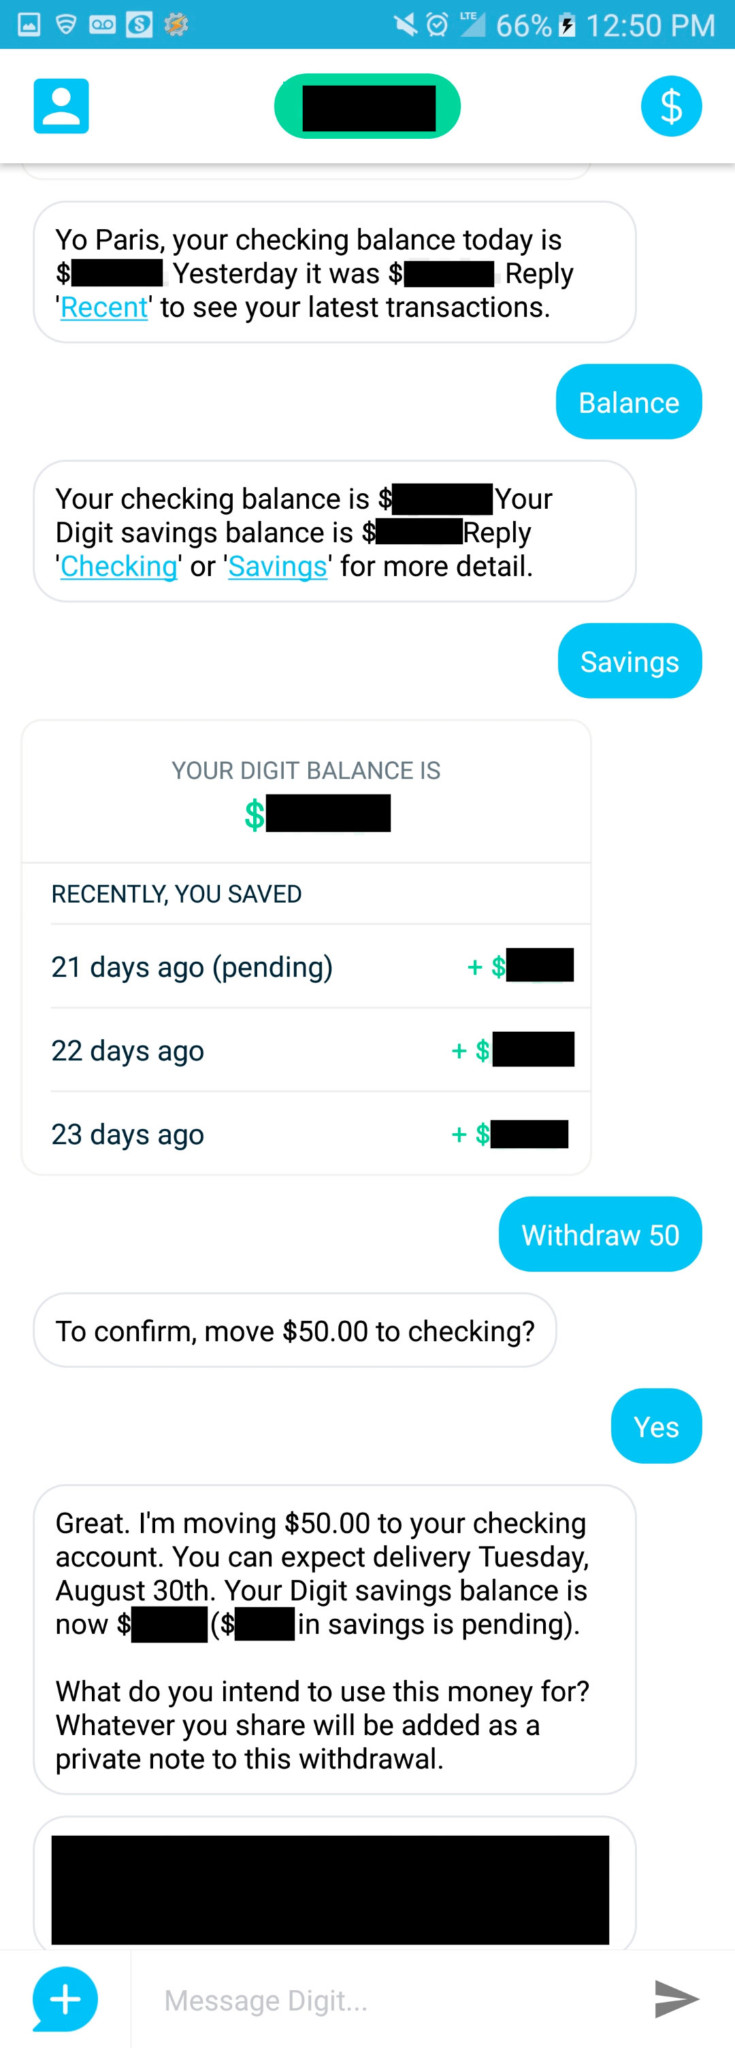 Withdrawing $50 through Digit's app digit vs qapital